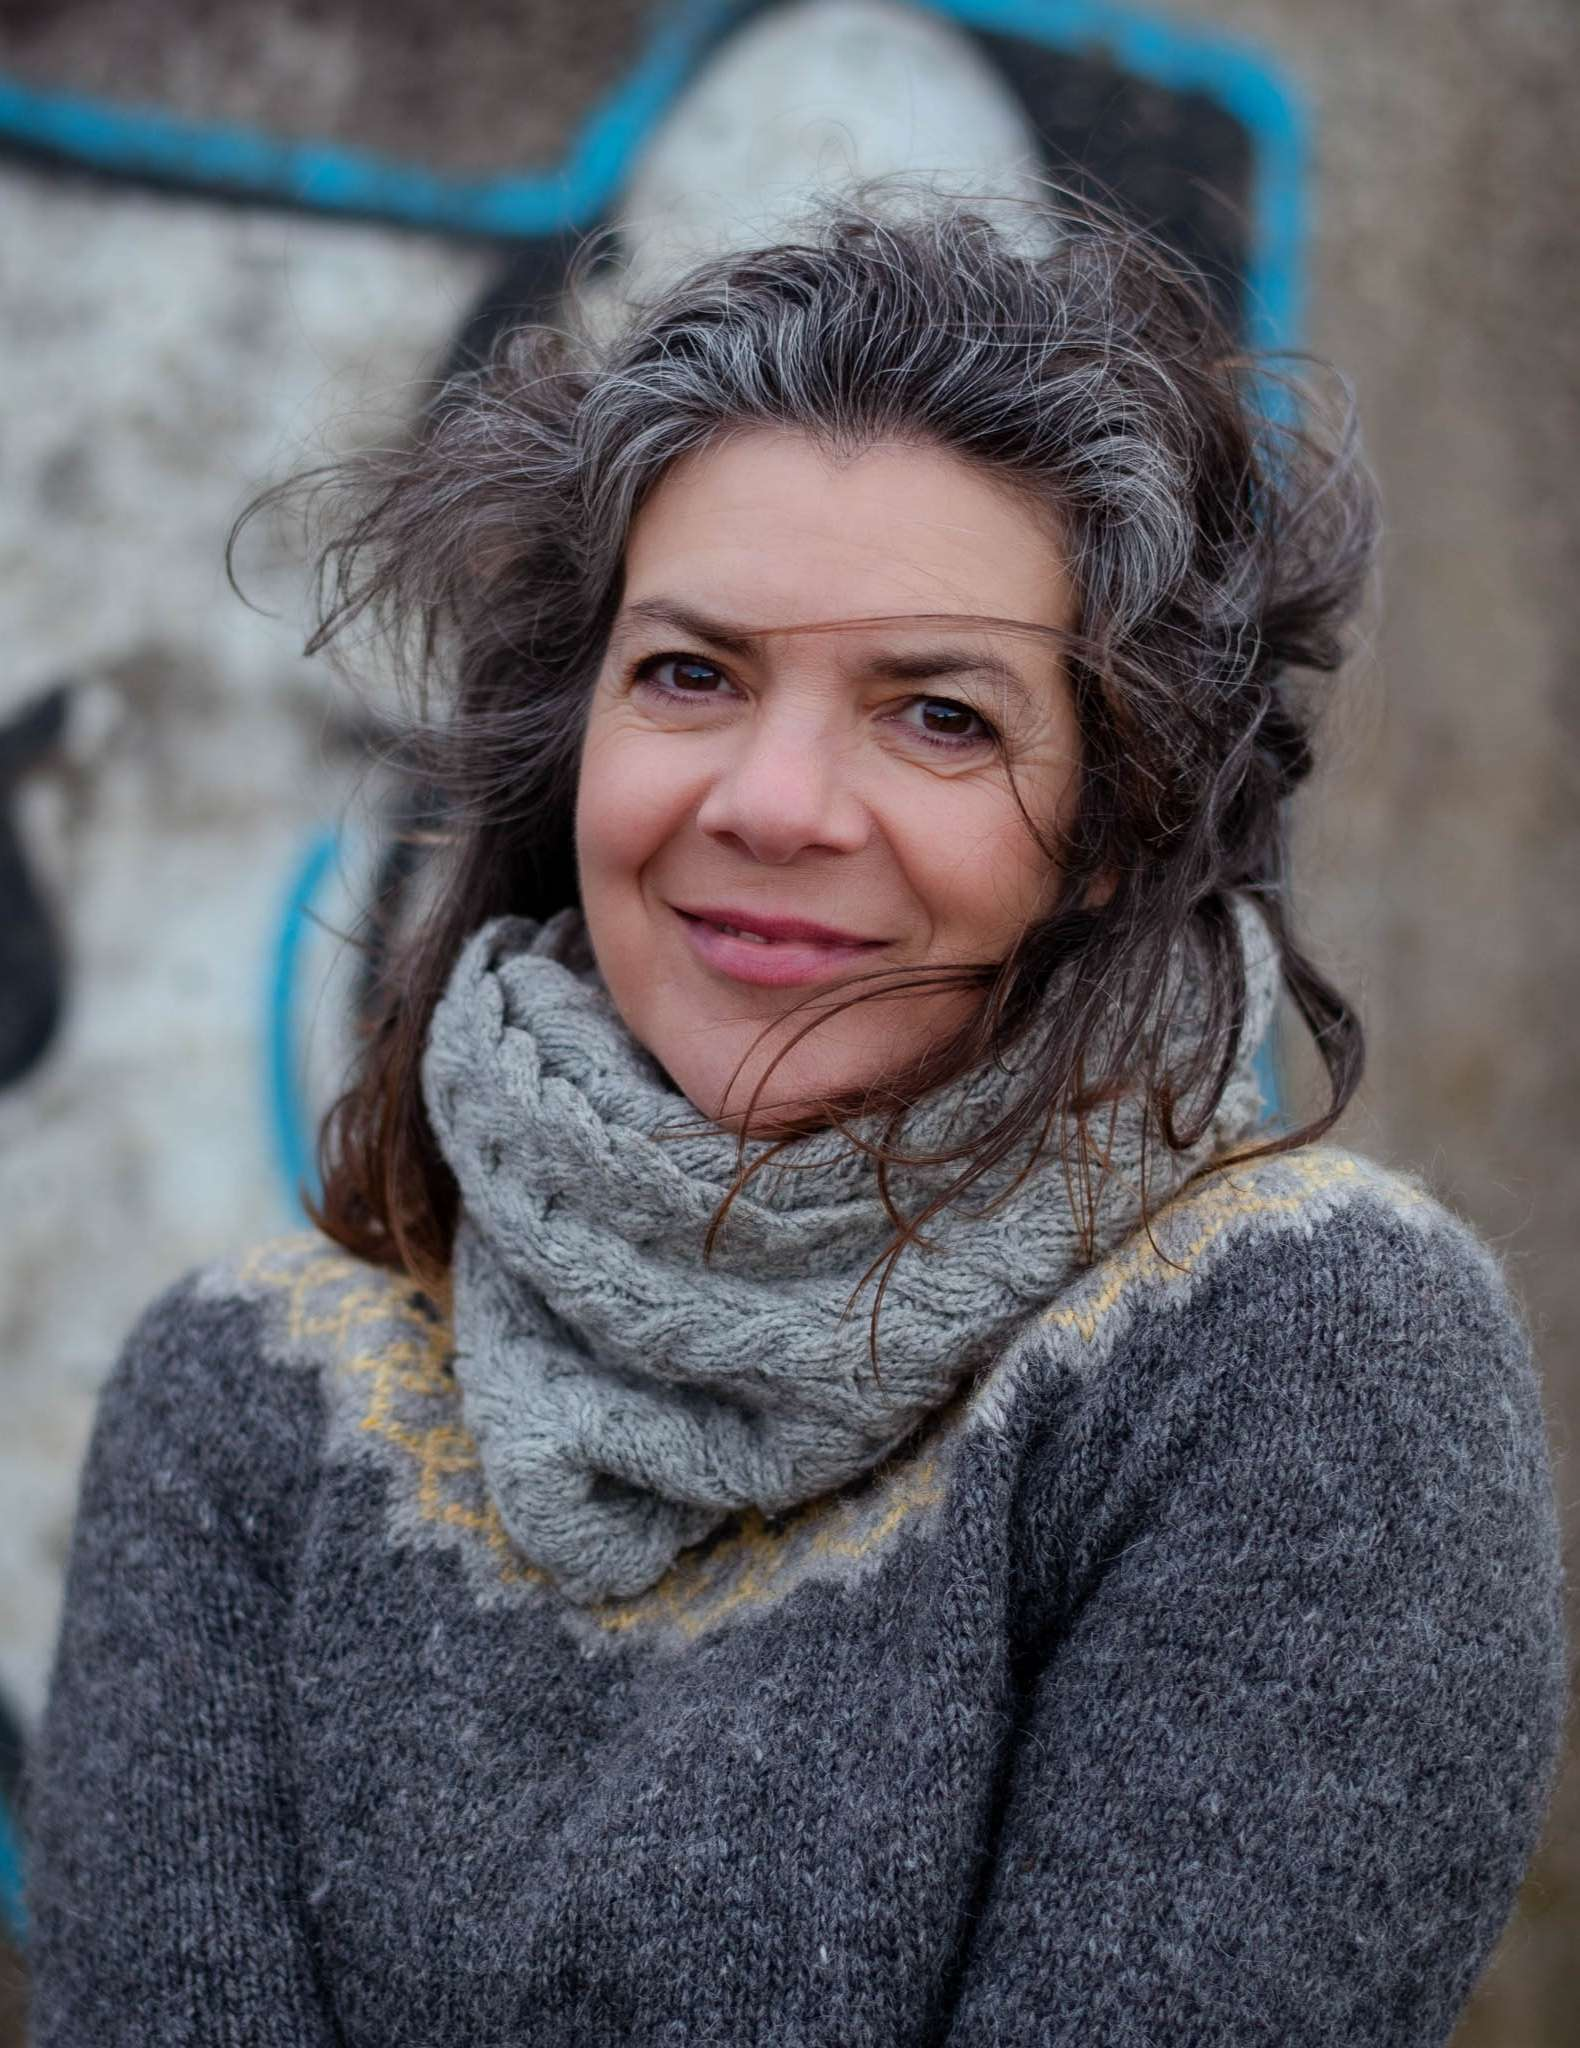 A white woman with dark hair flecked with grey wears a grey cabled cowl and grey and yellow colourwork yoke sweater.